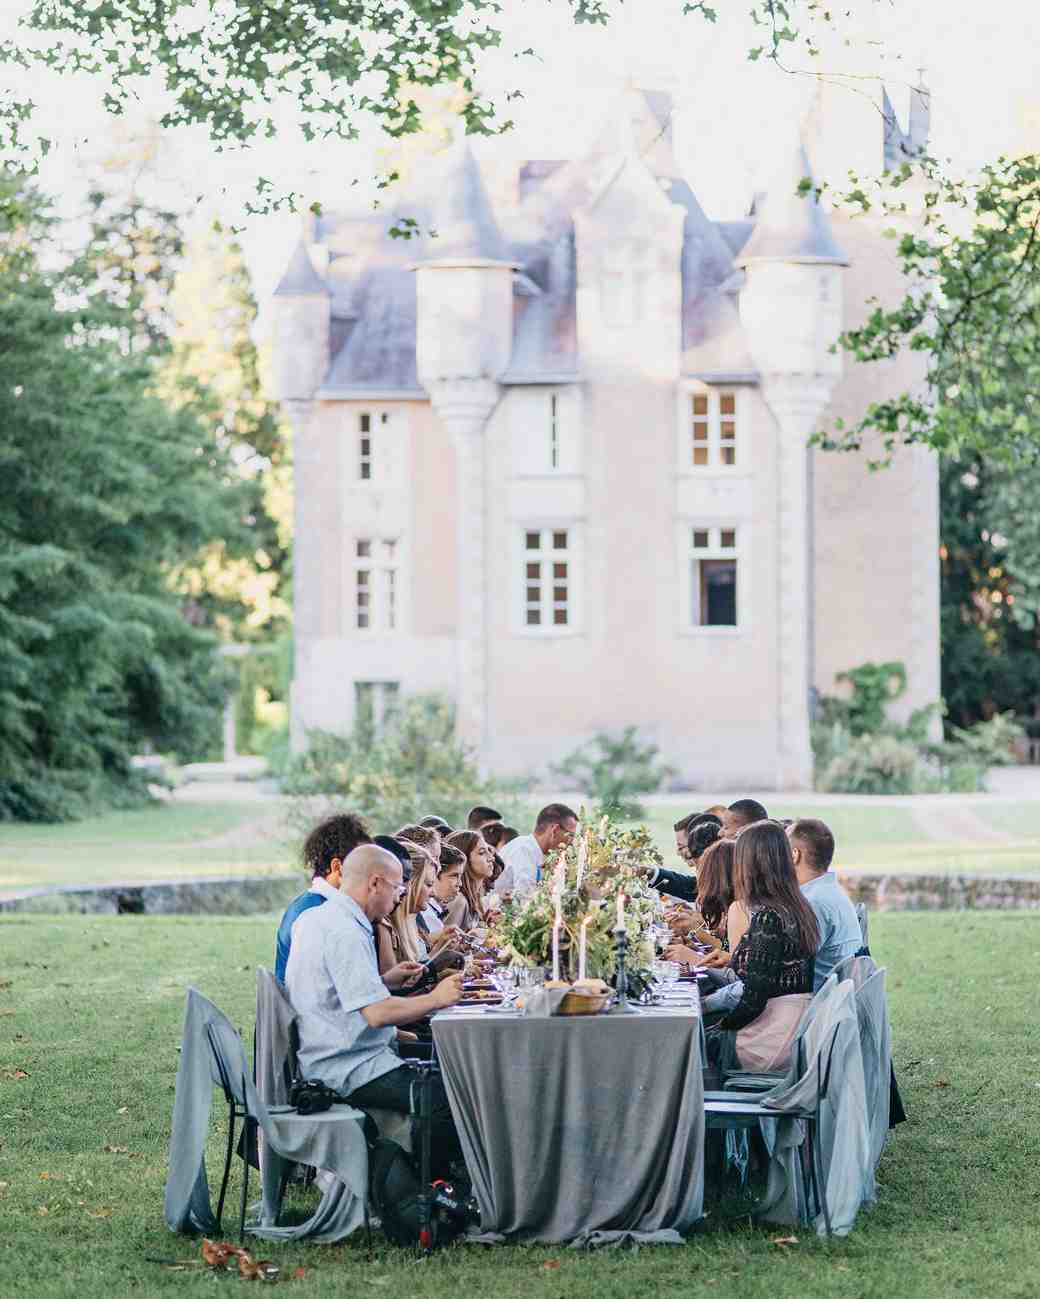 This Dreamy Wedding in France Was a Family Affair | Martha Stewart ...